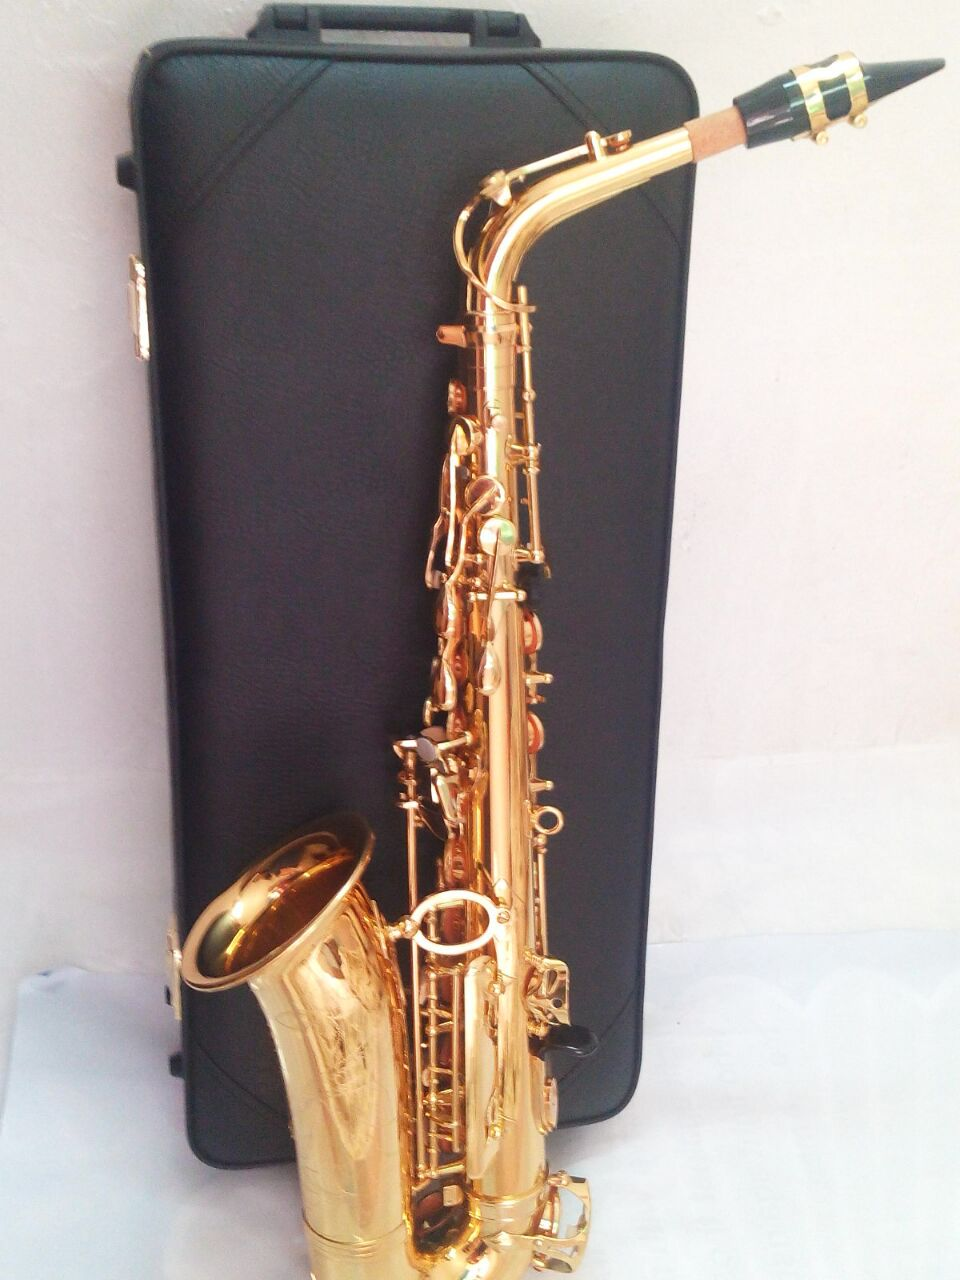 New Saxophone Alto Sax YAS 62 Copy Professional E-flat Gold Saxofone Top Musical Instruments davines spa набор стоп выпадение natural tech